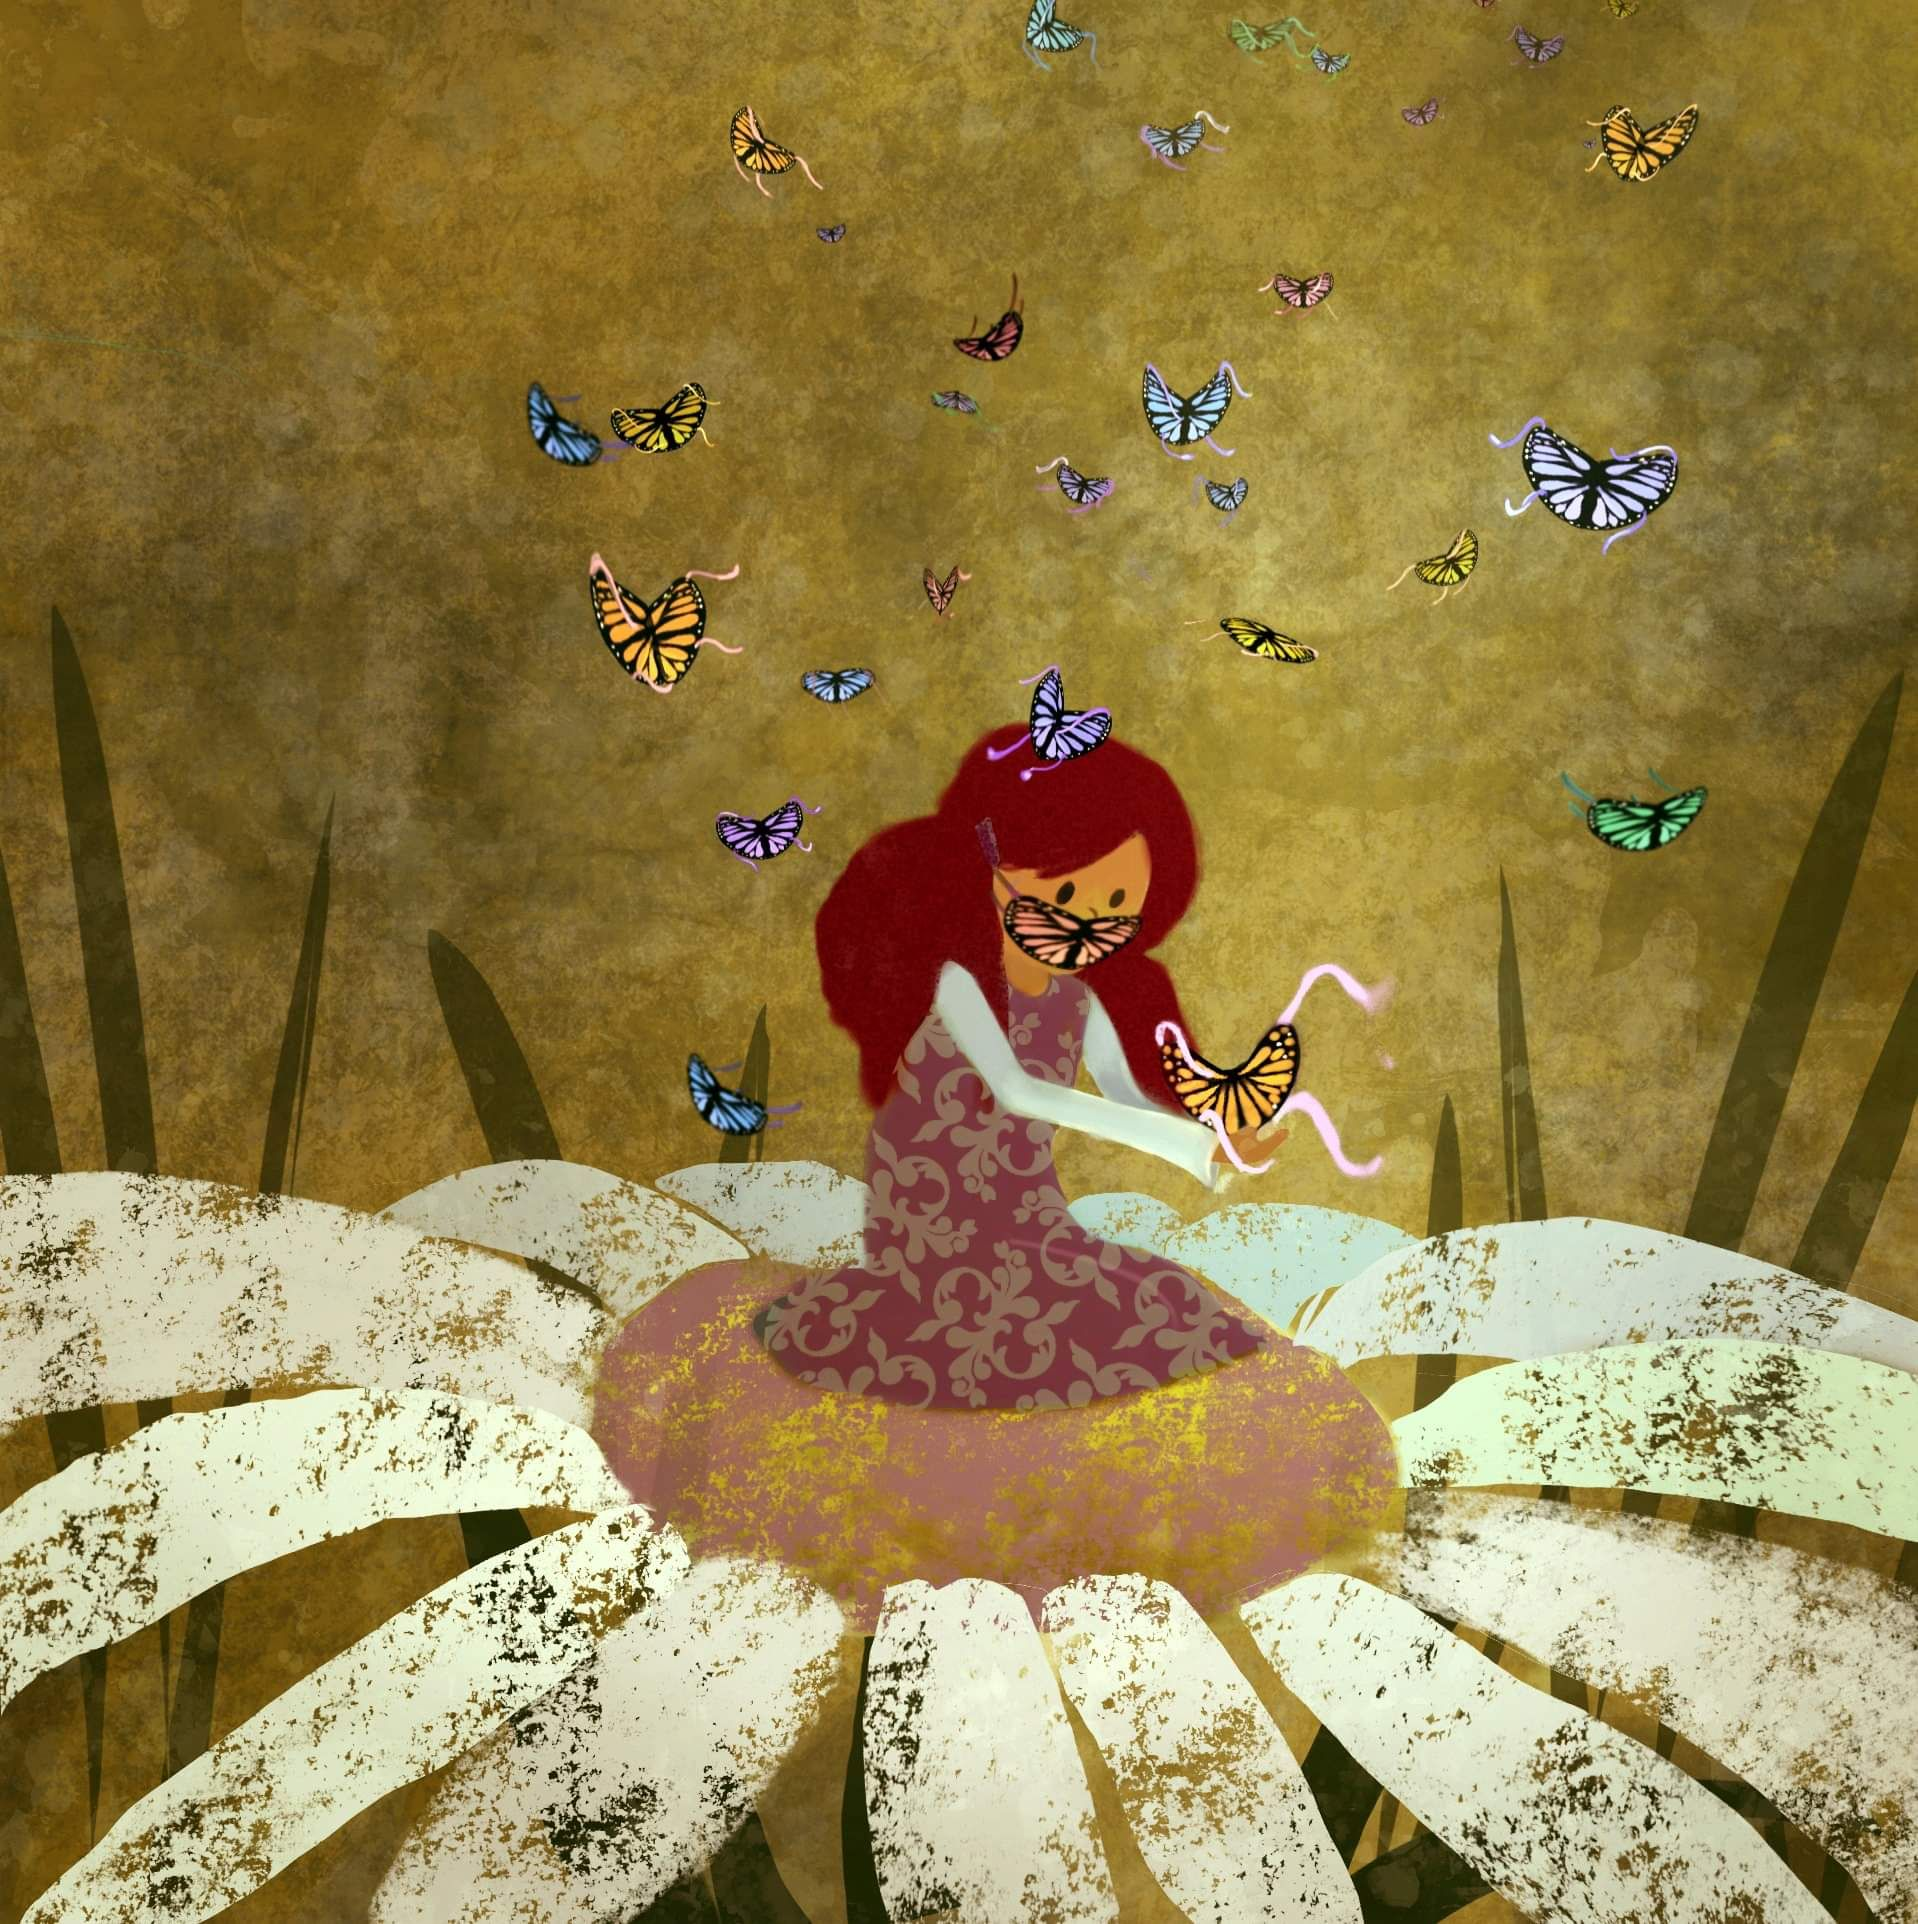 received_3286472138071513.jpeg